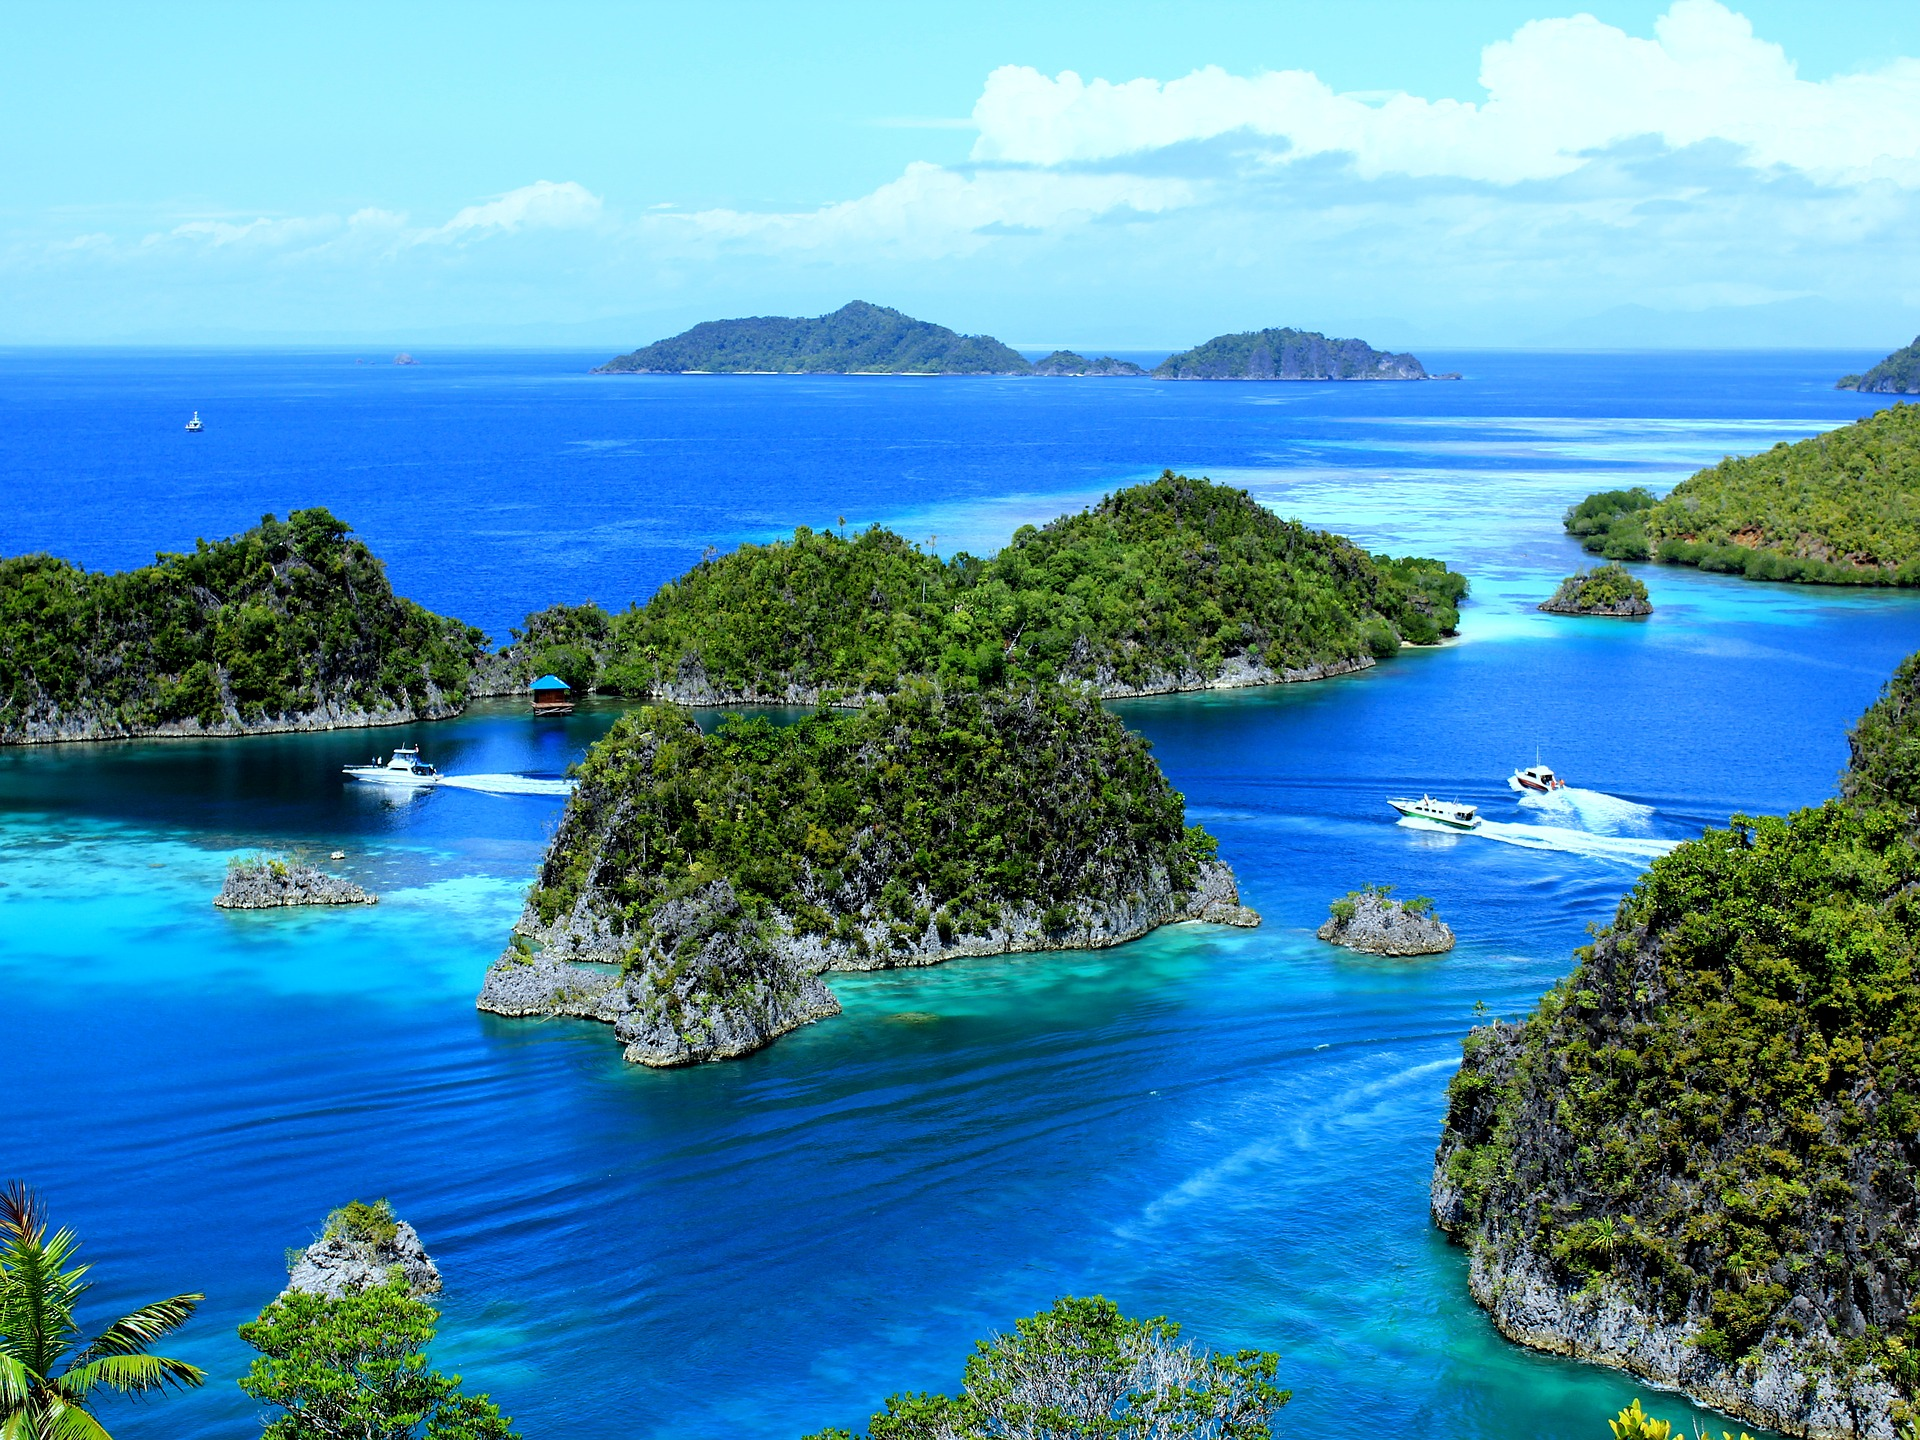 Raja Ampat, Indonesia - Image by Ady Arif Fauzan from Pixabay